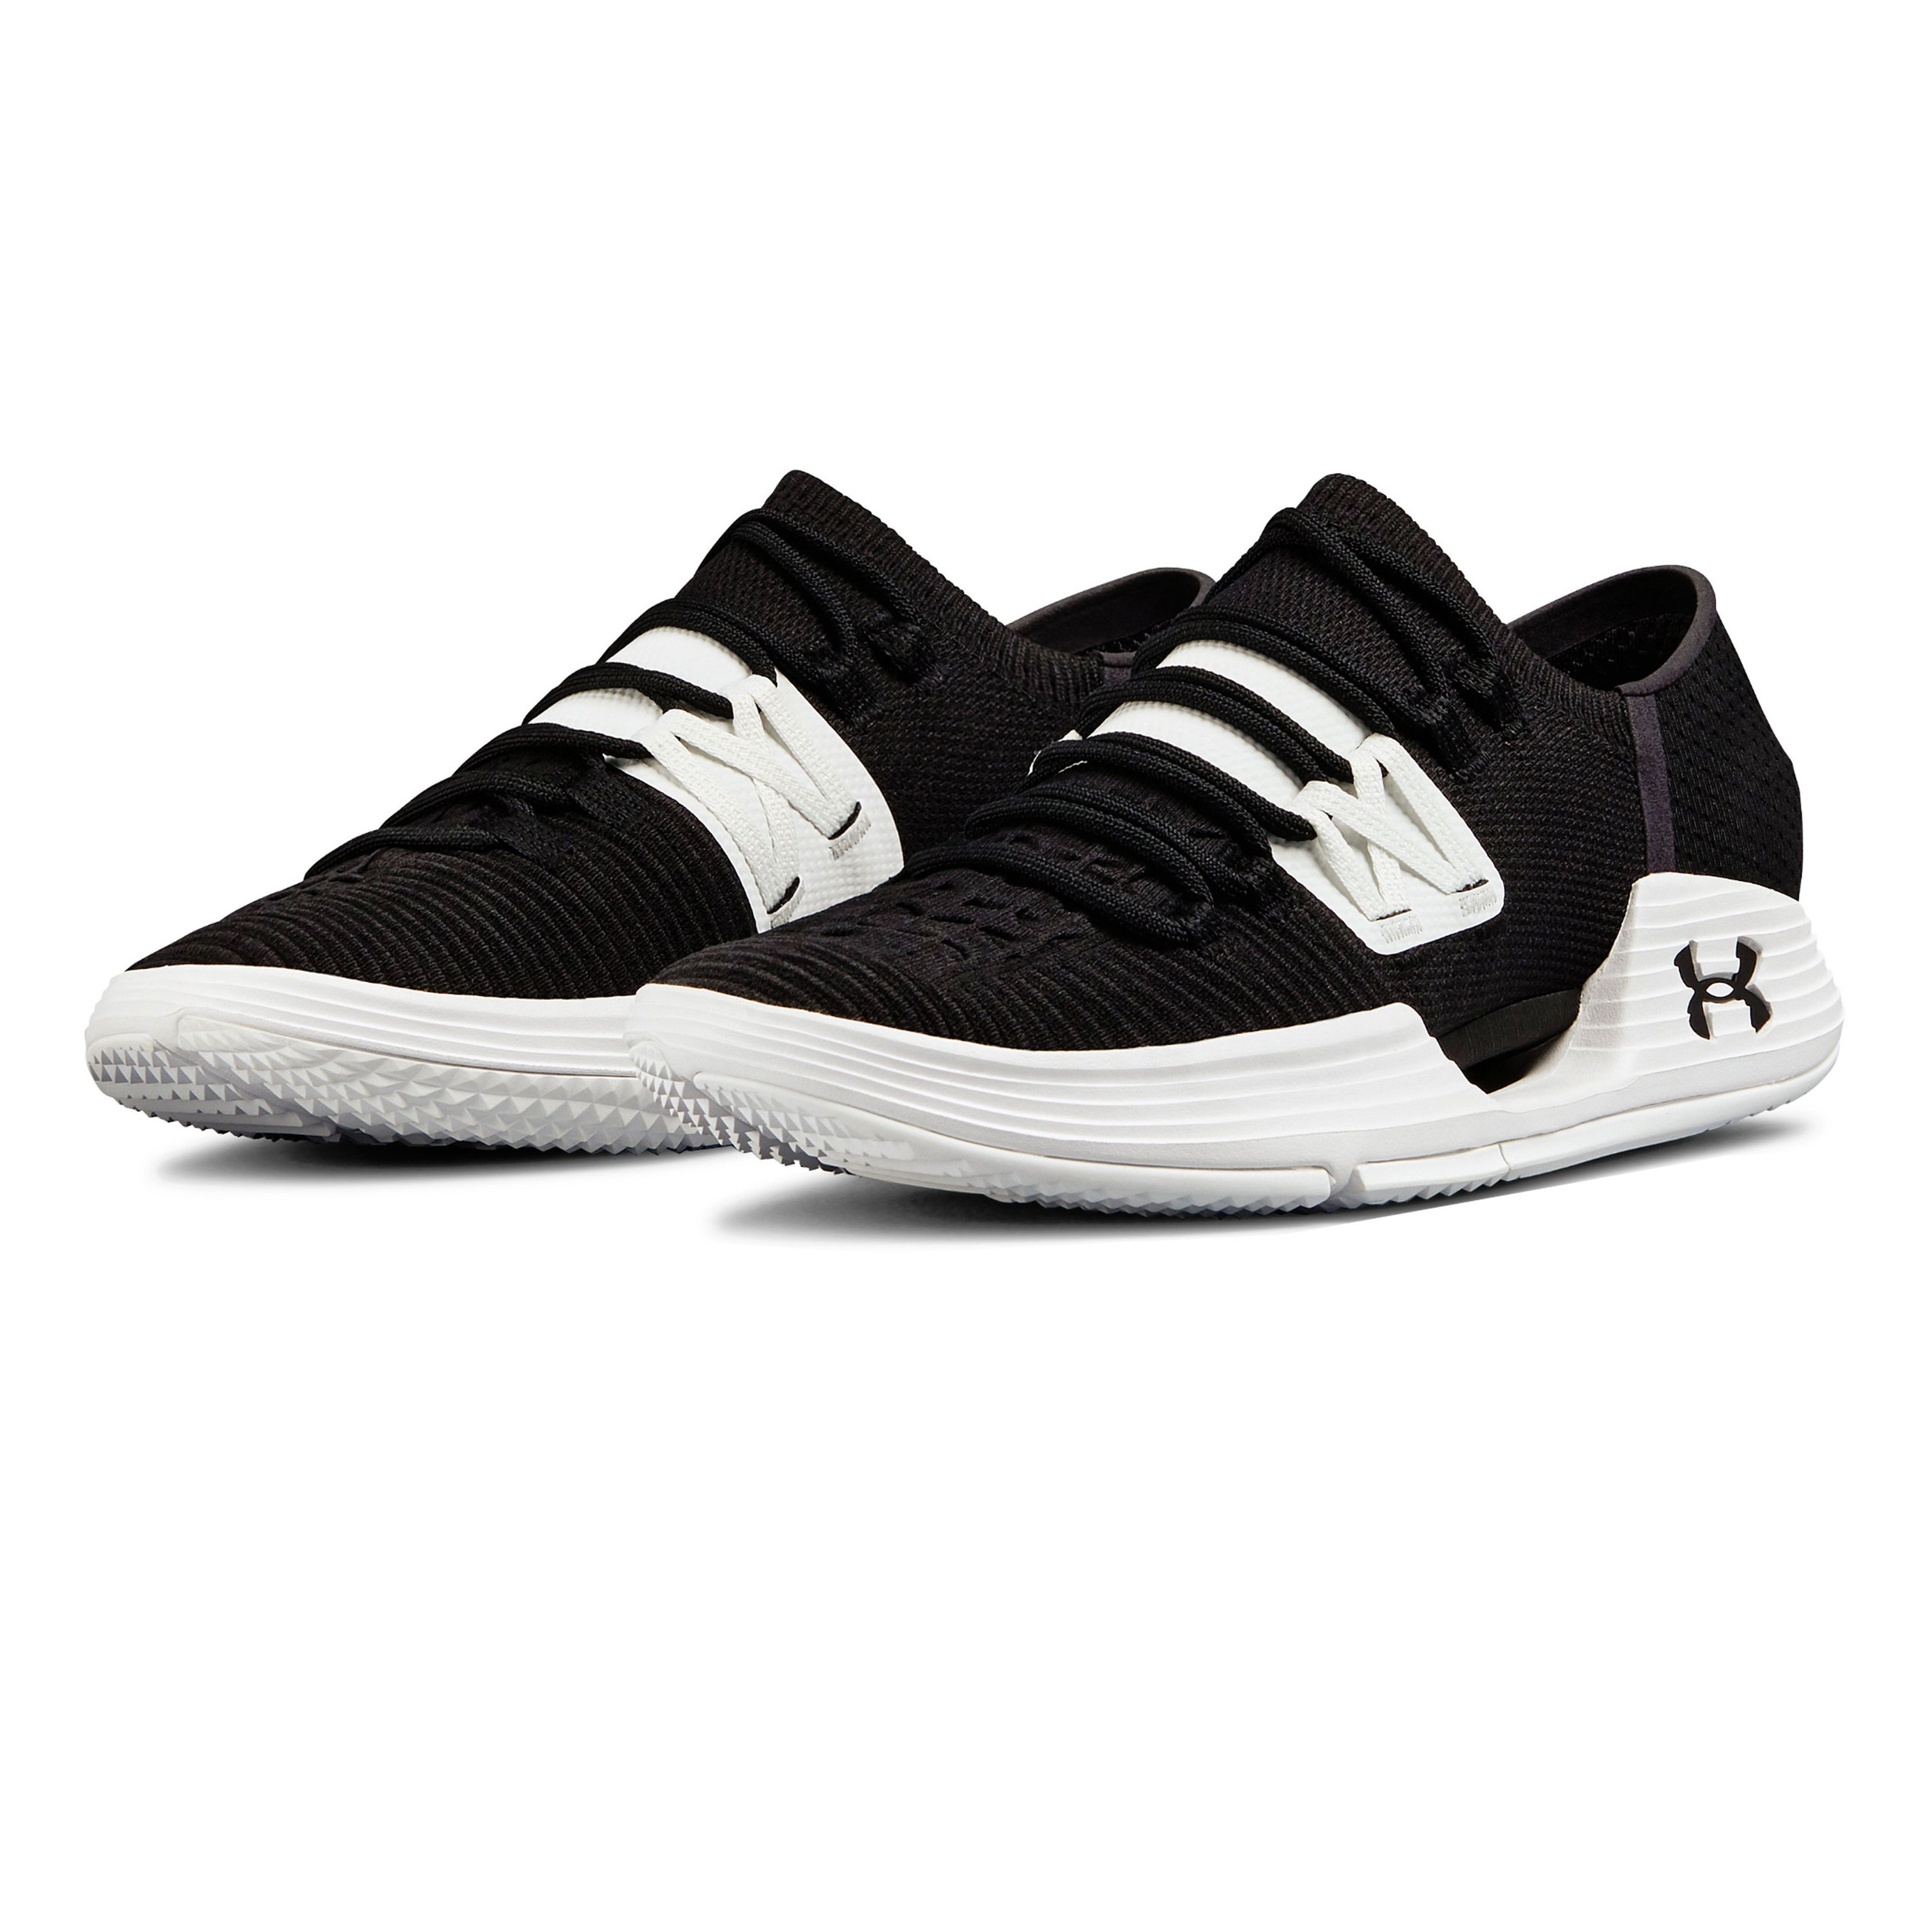 purchase cheap e9197 f22c2 Details about Under Armour Mens Speedform AMP 3.0 Training Gym Fitness  Shoes Black Trainers